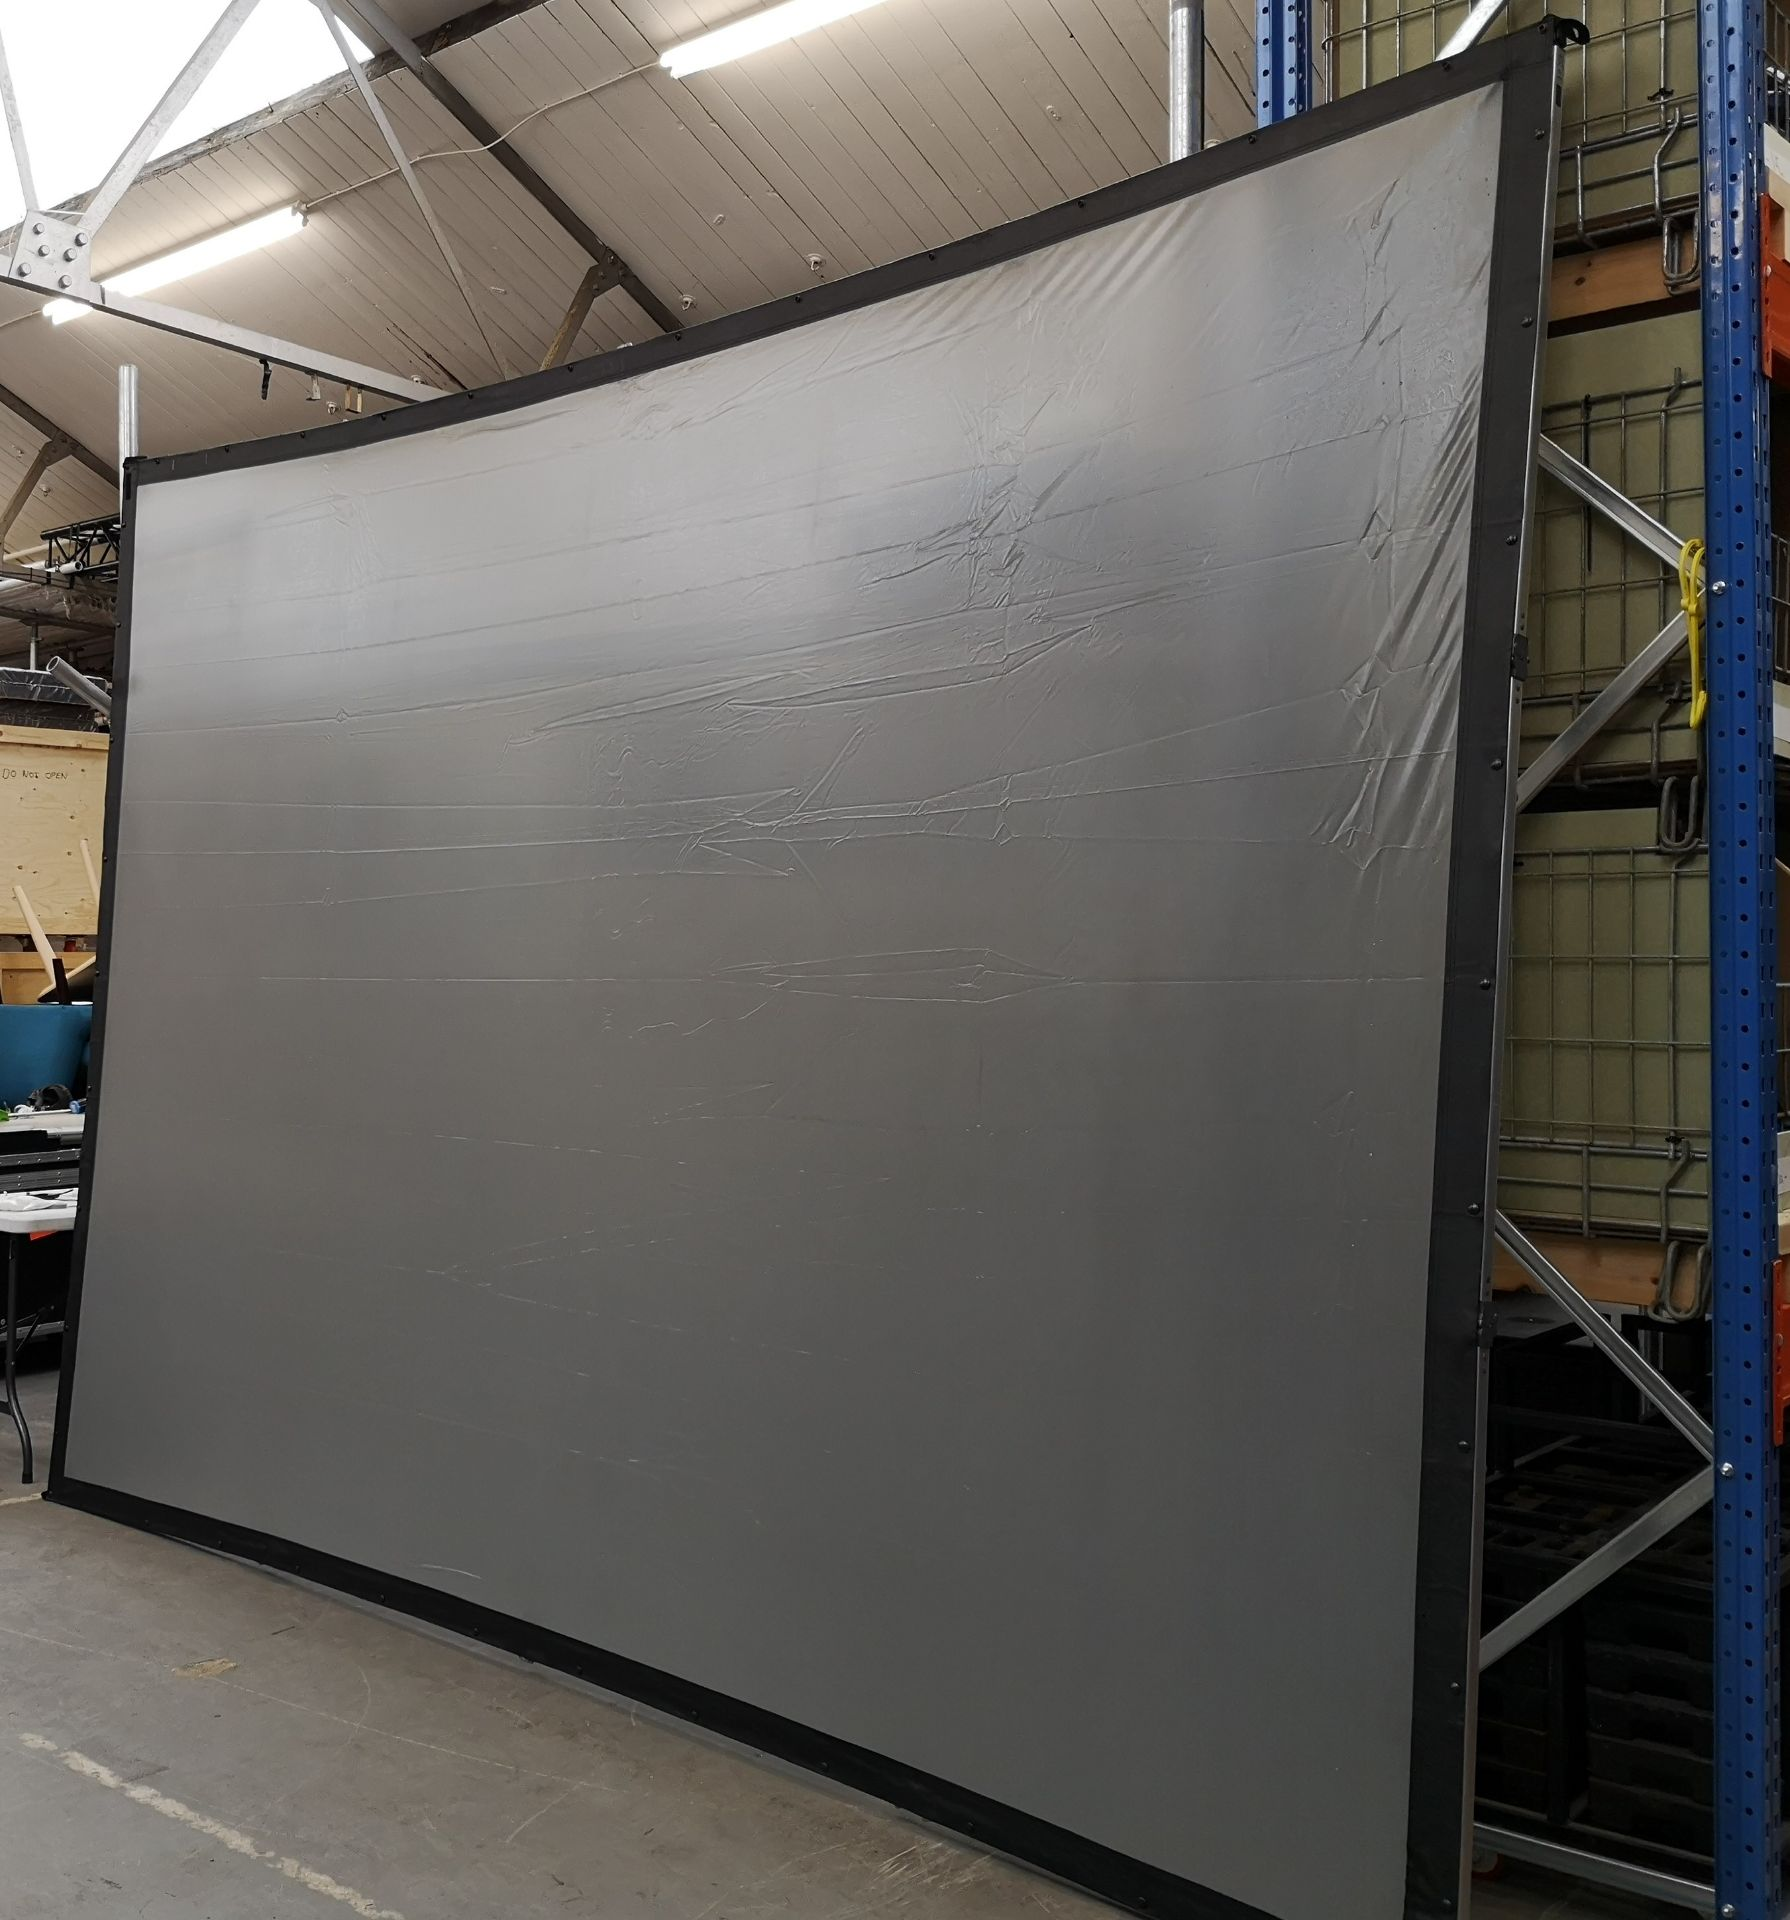 A DA-LITE 12ft x 9ft Rear Projection Fastfold Screen with frame, legs, bolts, screen surface, bag - Image 6 of 10